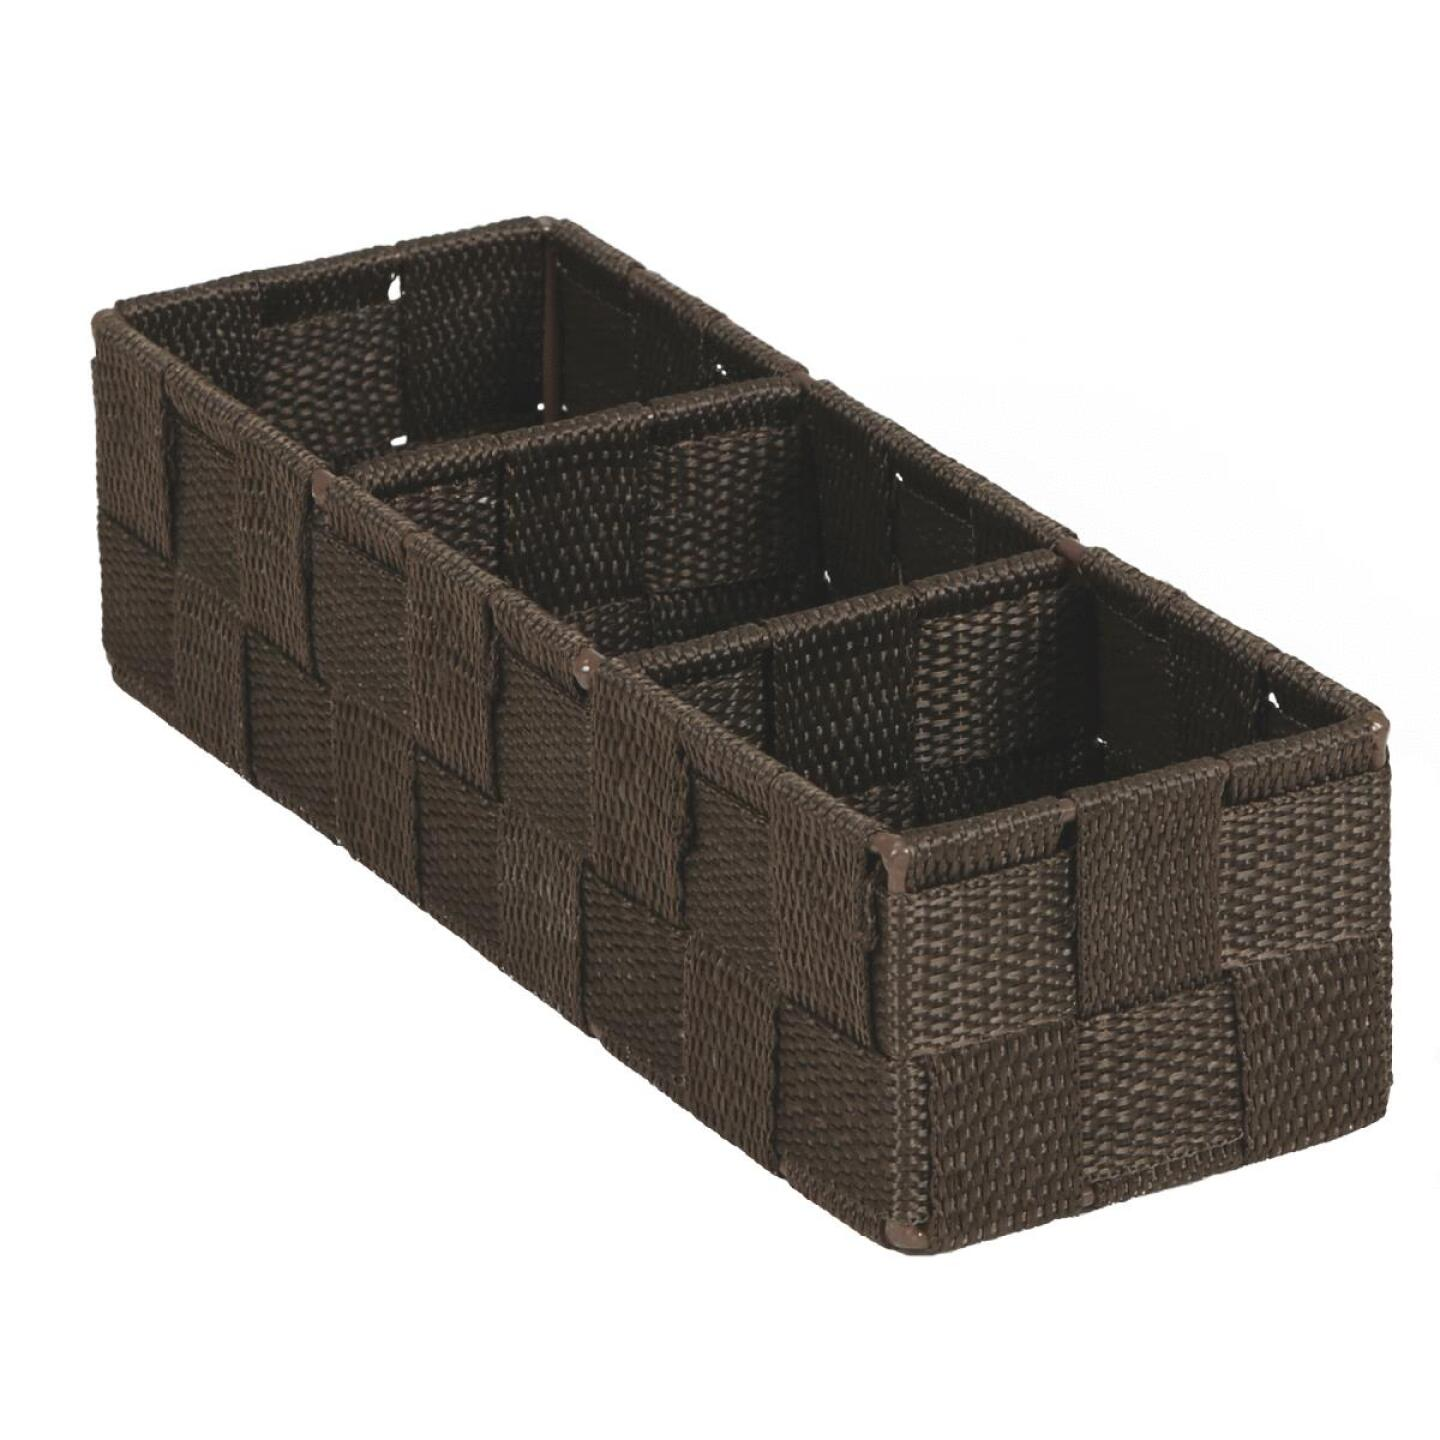 Home Impressions 3.25 In. W. x 2.25 In. H. x 9.5 In. L. Woven Storage Tray, Brown Image 1